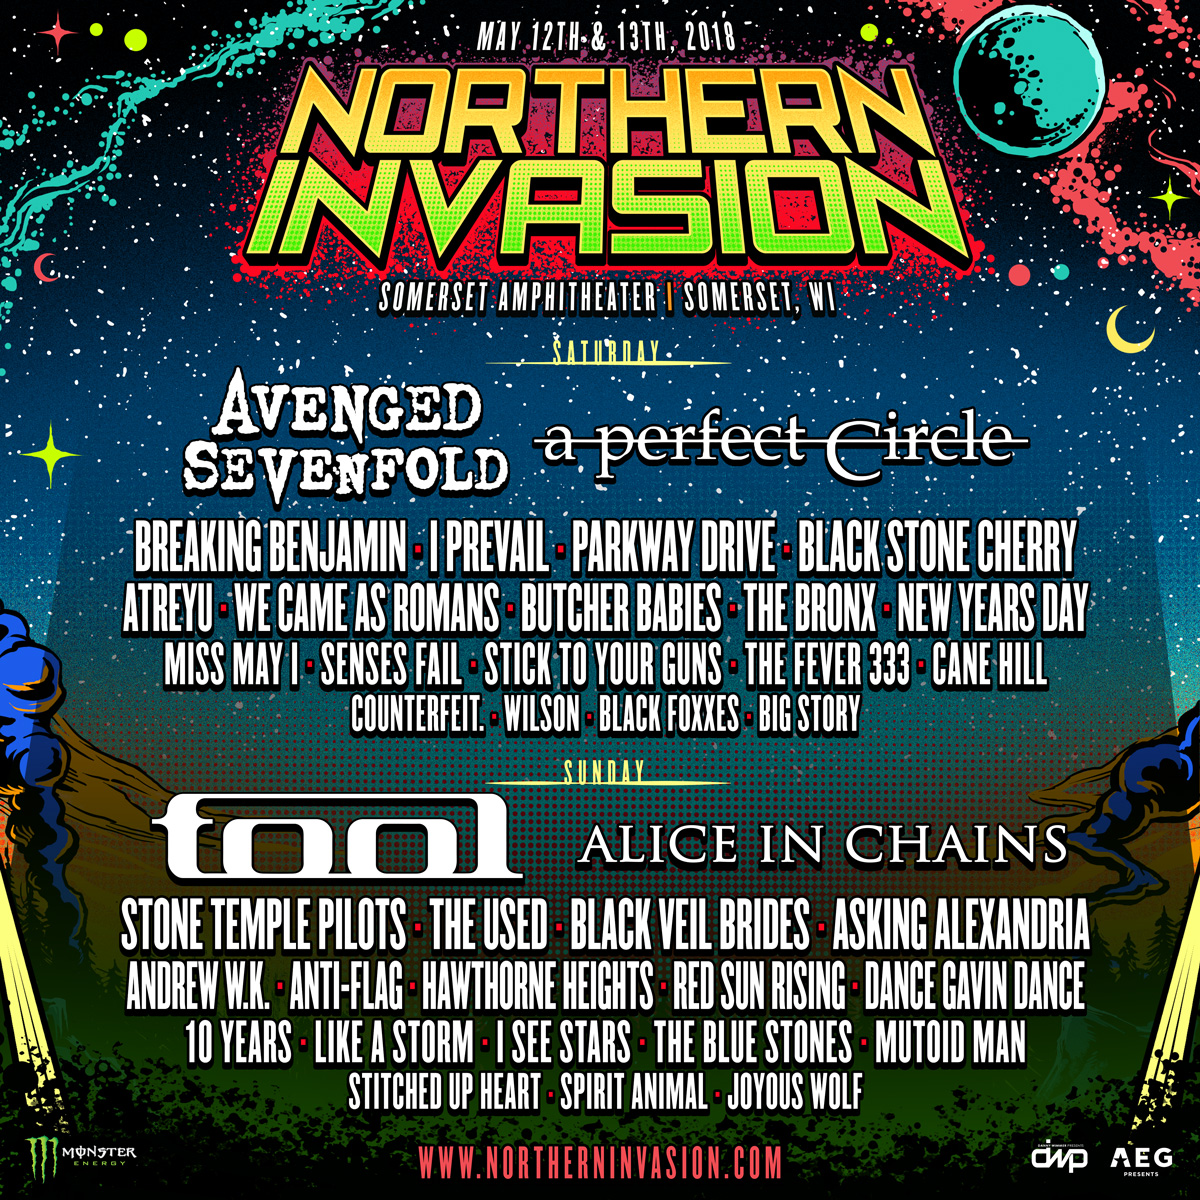 Northern Invasion Daily Lineups Announced